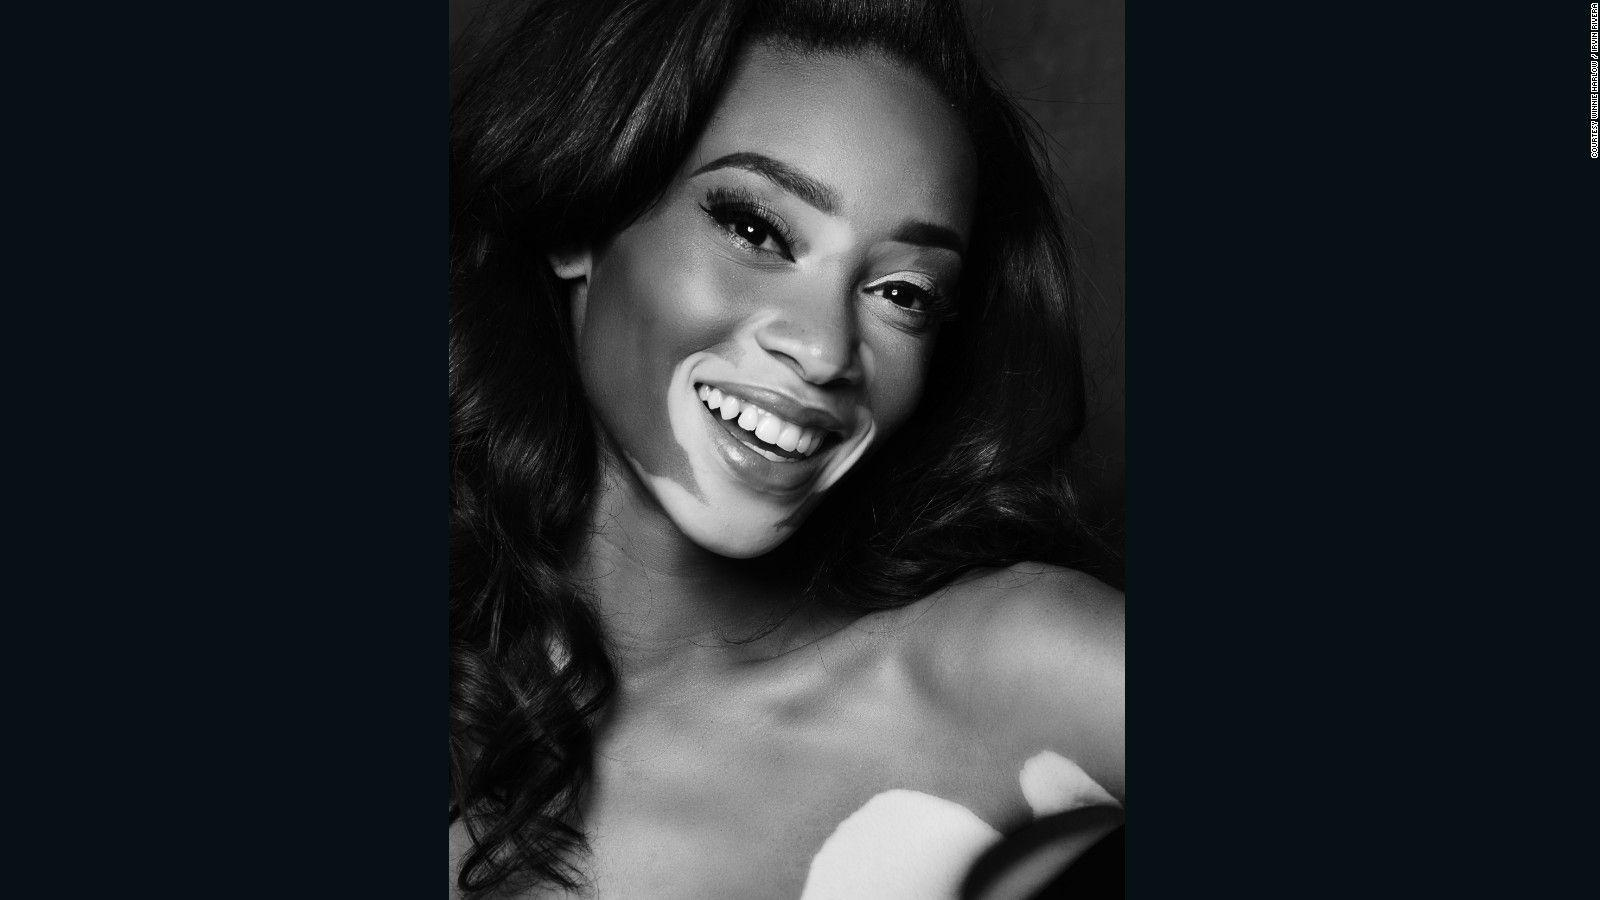 Model Winnie Harlow is changing the face of fashion Style